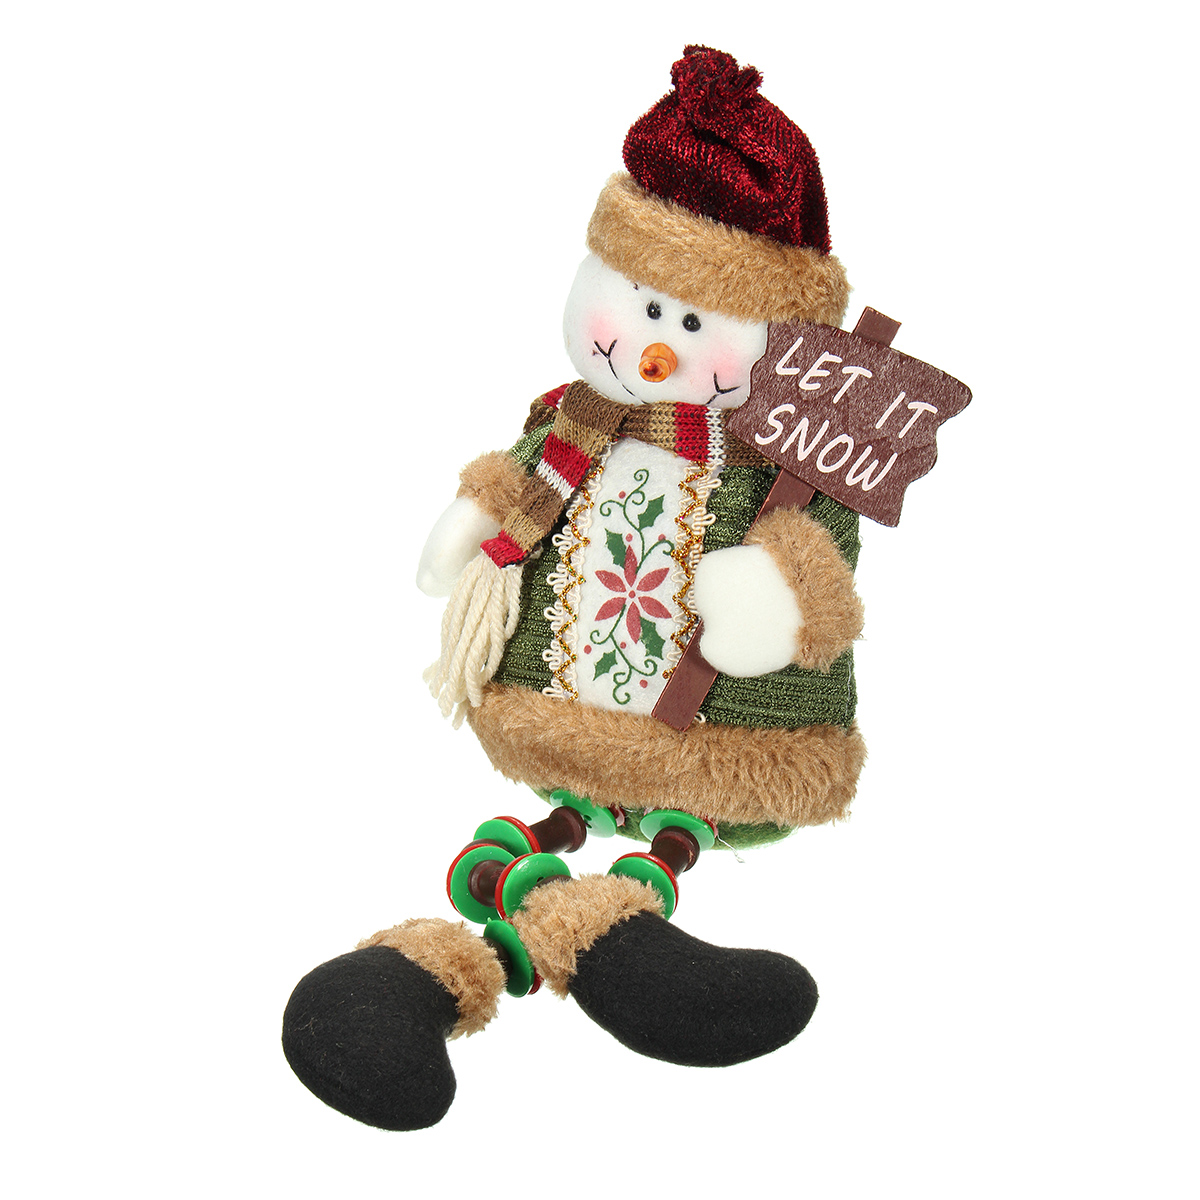 Christmas Home Decoration Sitting Cute Snowman Ornament Flannel Toy Gift - Photo: 1